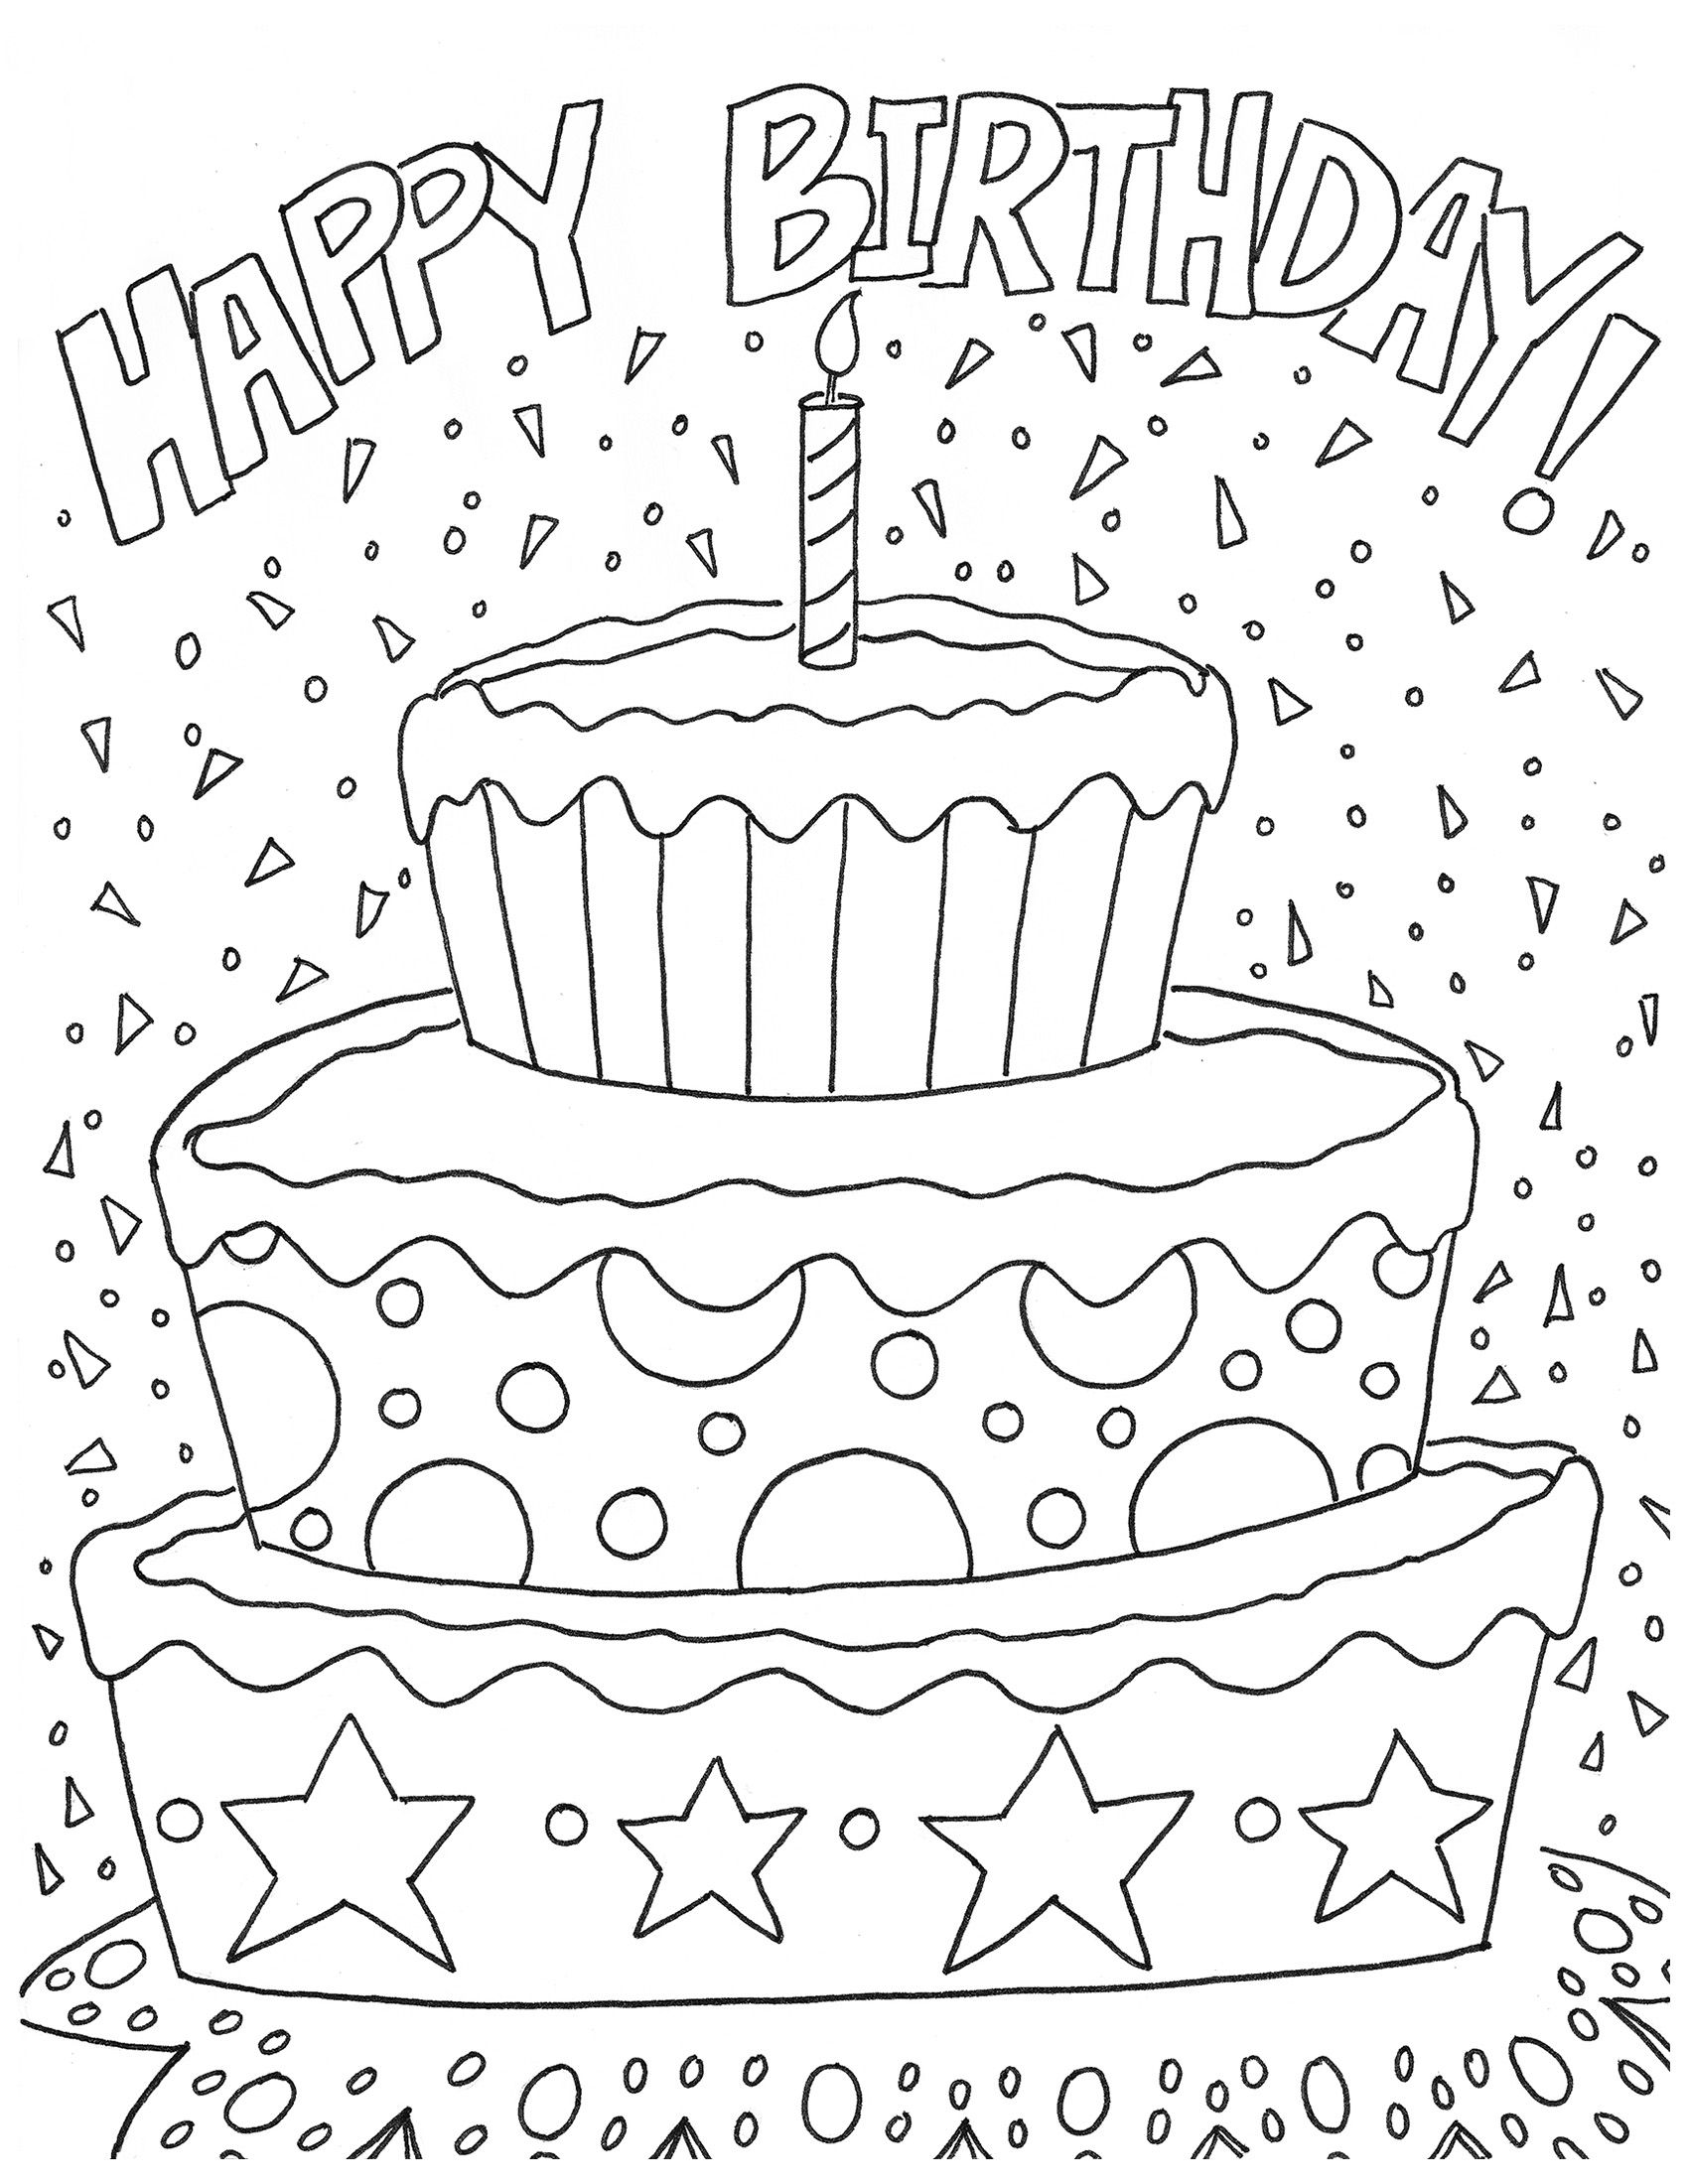 Happy Birthday Coloring Pages Happy Birthday Coloring Pages